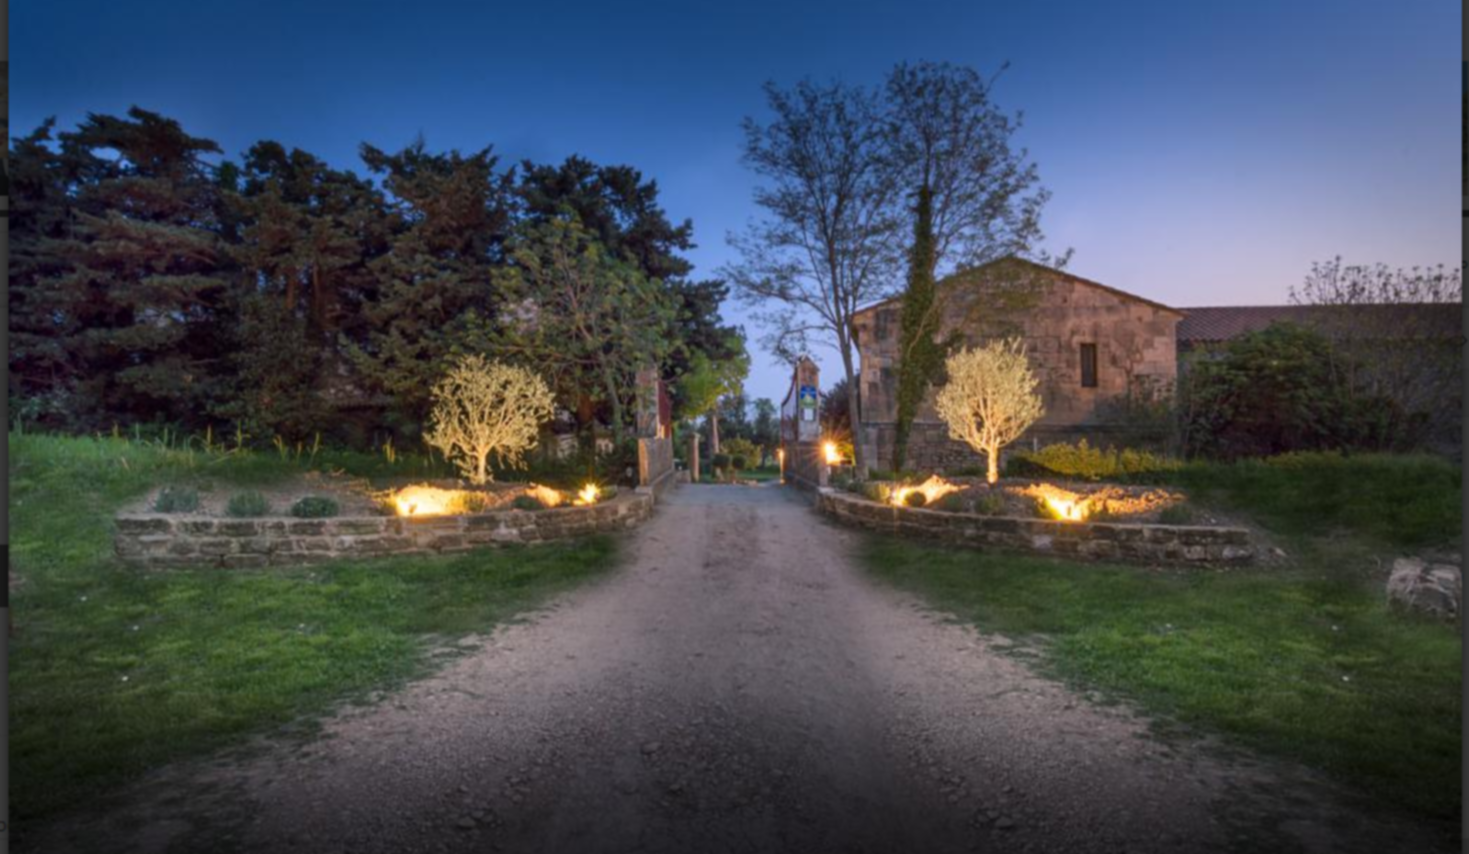 A path with grass in front of a house at Le Mas d'Eymard.